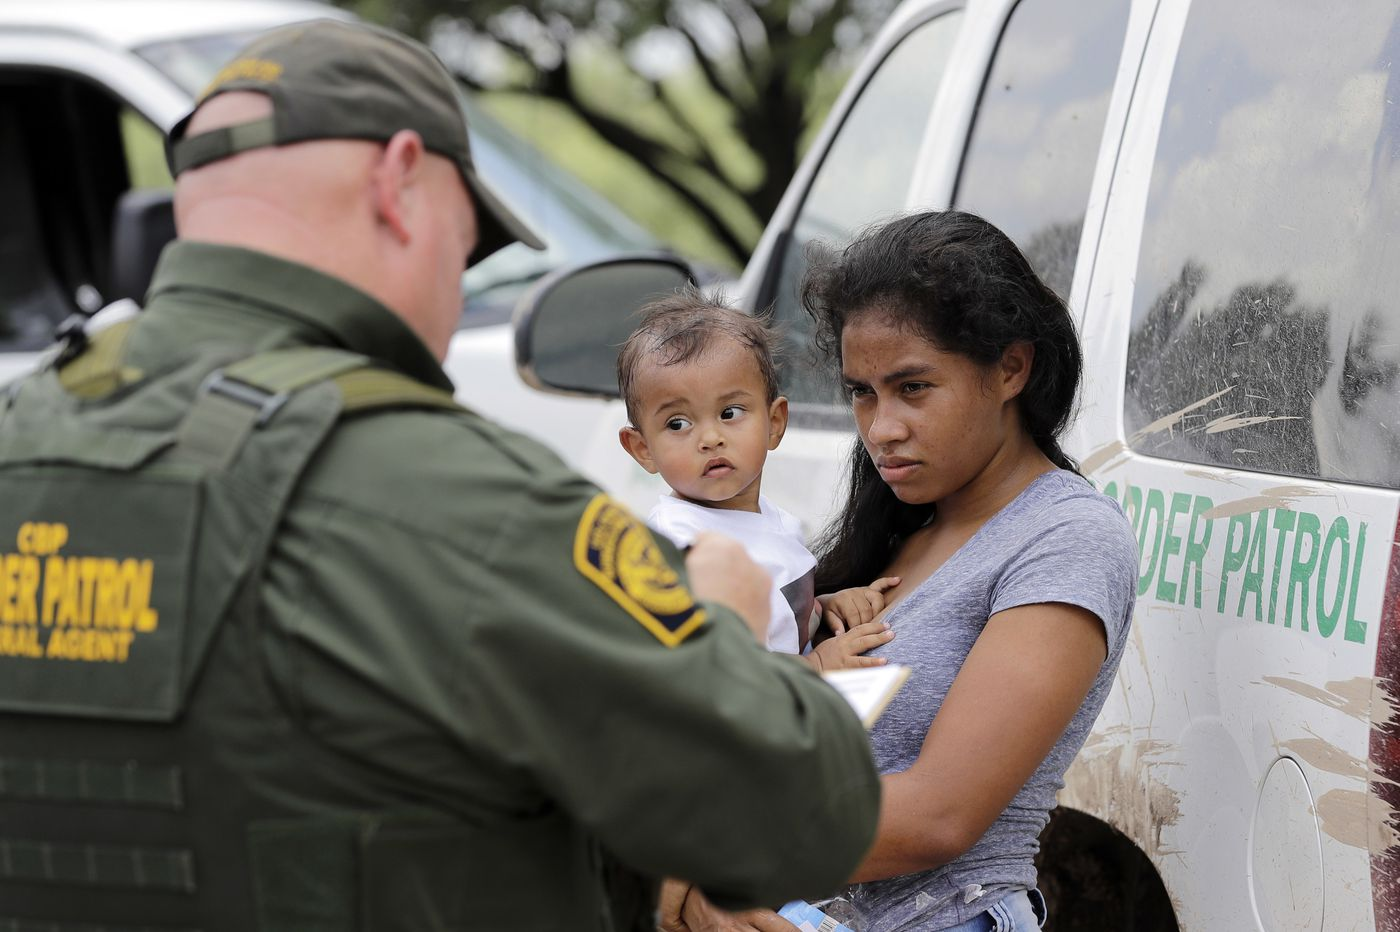 5th migrant child dies after detention by Border Patrol